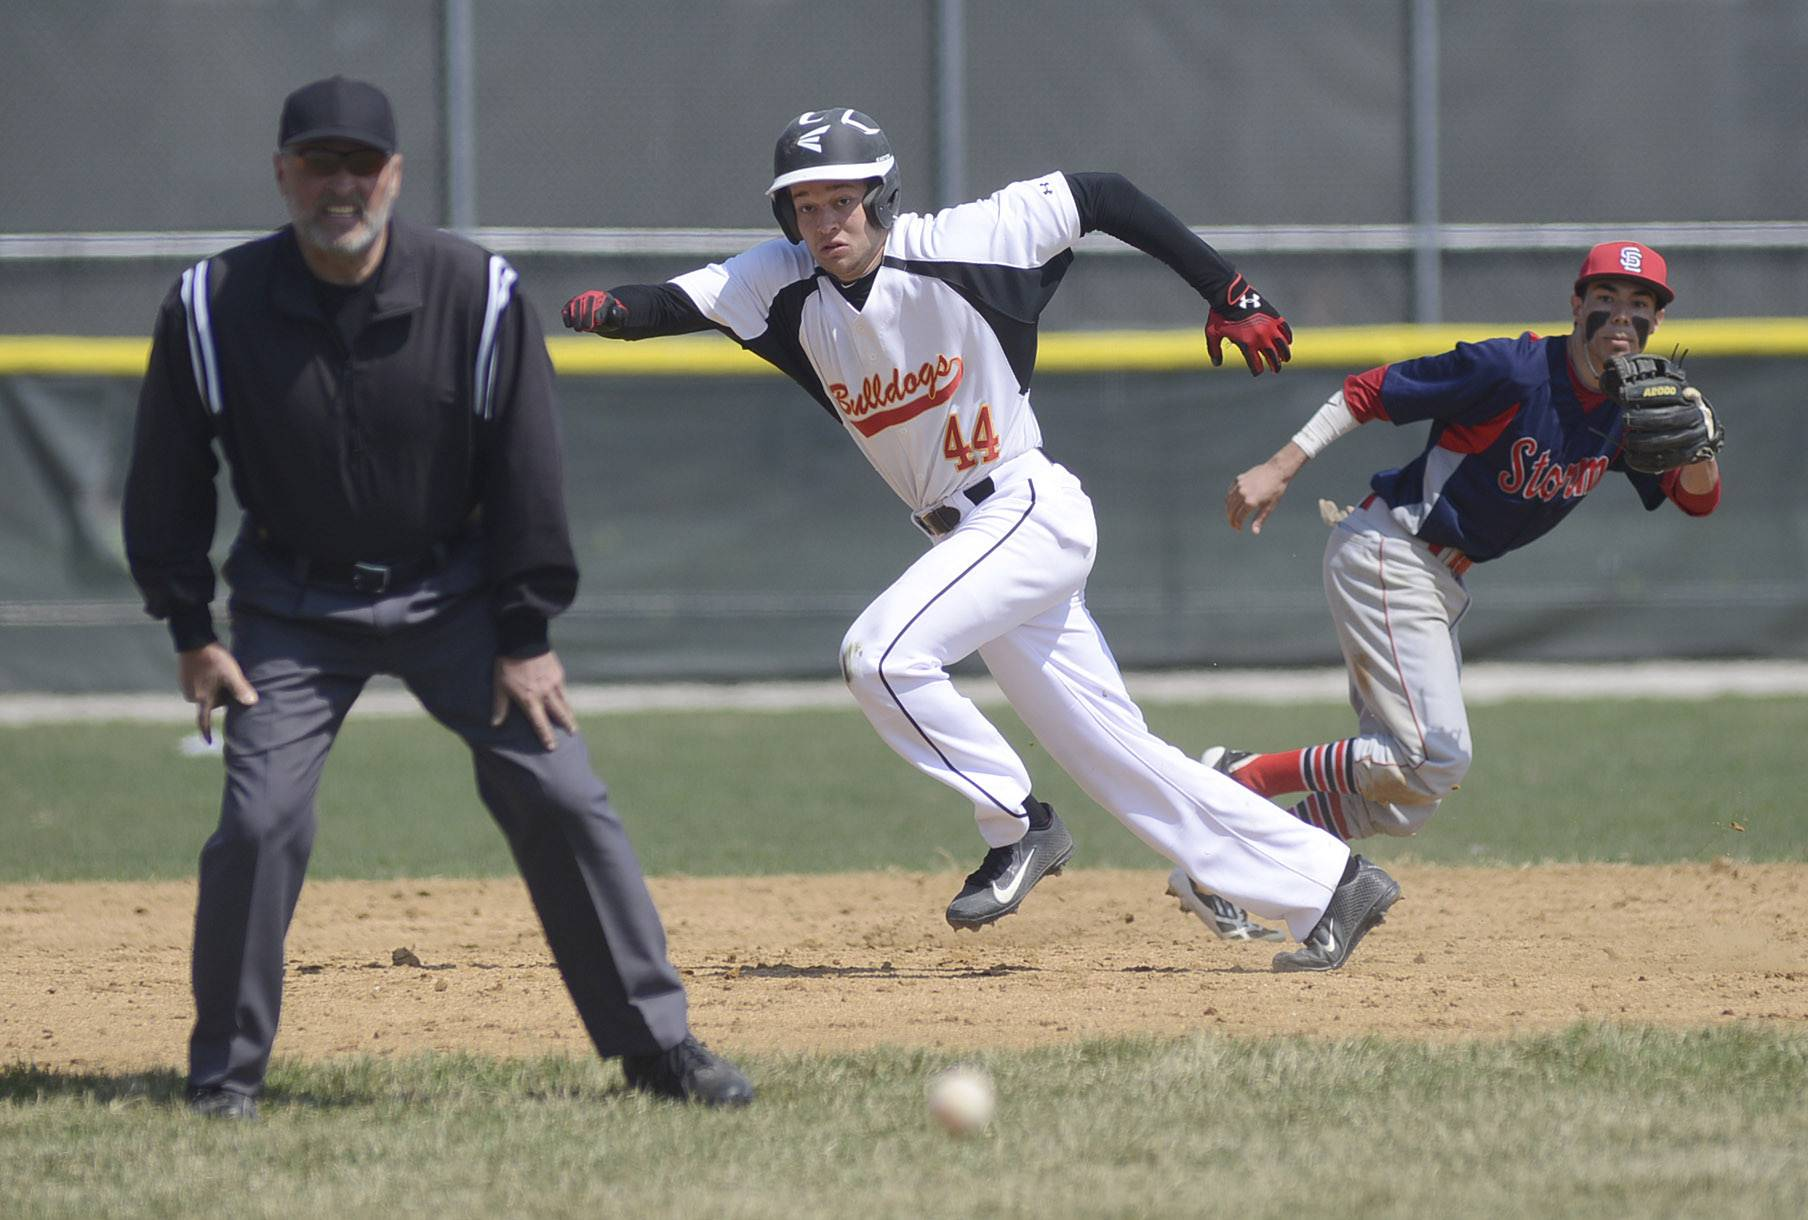 Batavia's Joe Gross takes off for third base as South Elgin's Dane Toppel runs in the opposite direction for the ball in the fourth inning on Friday.